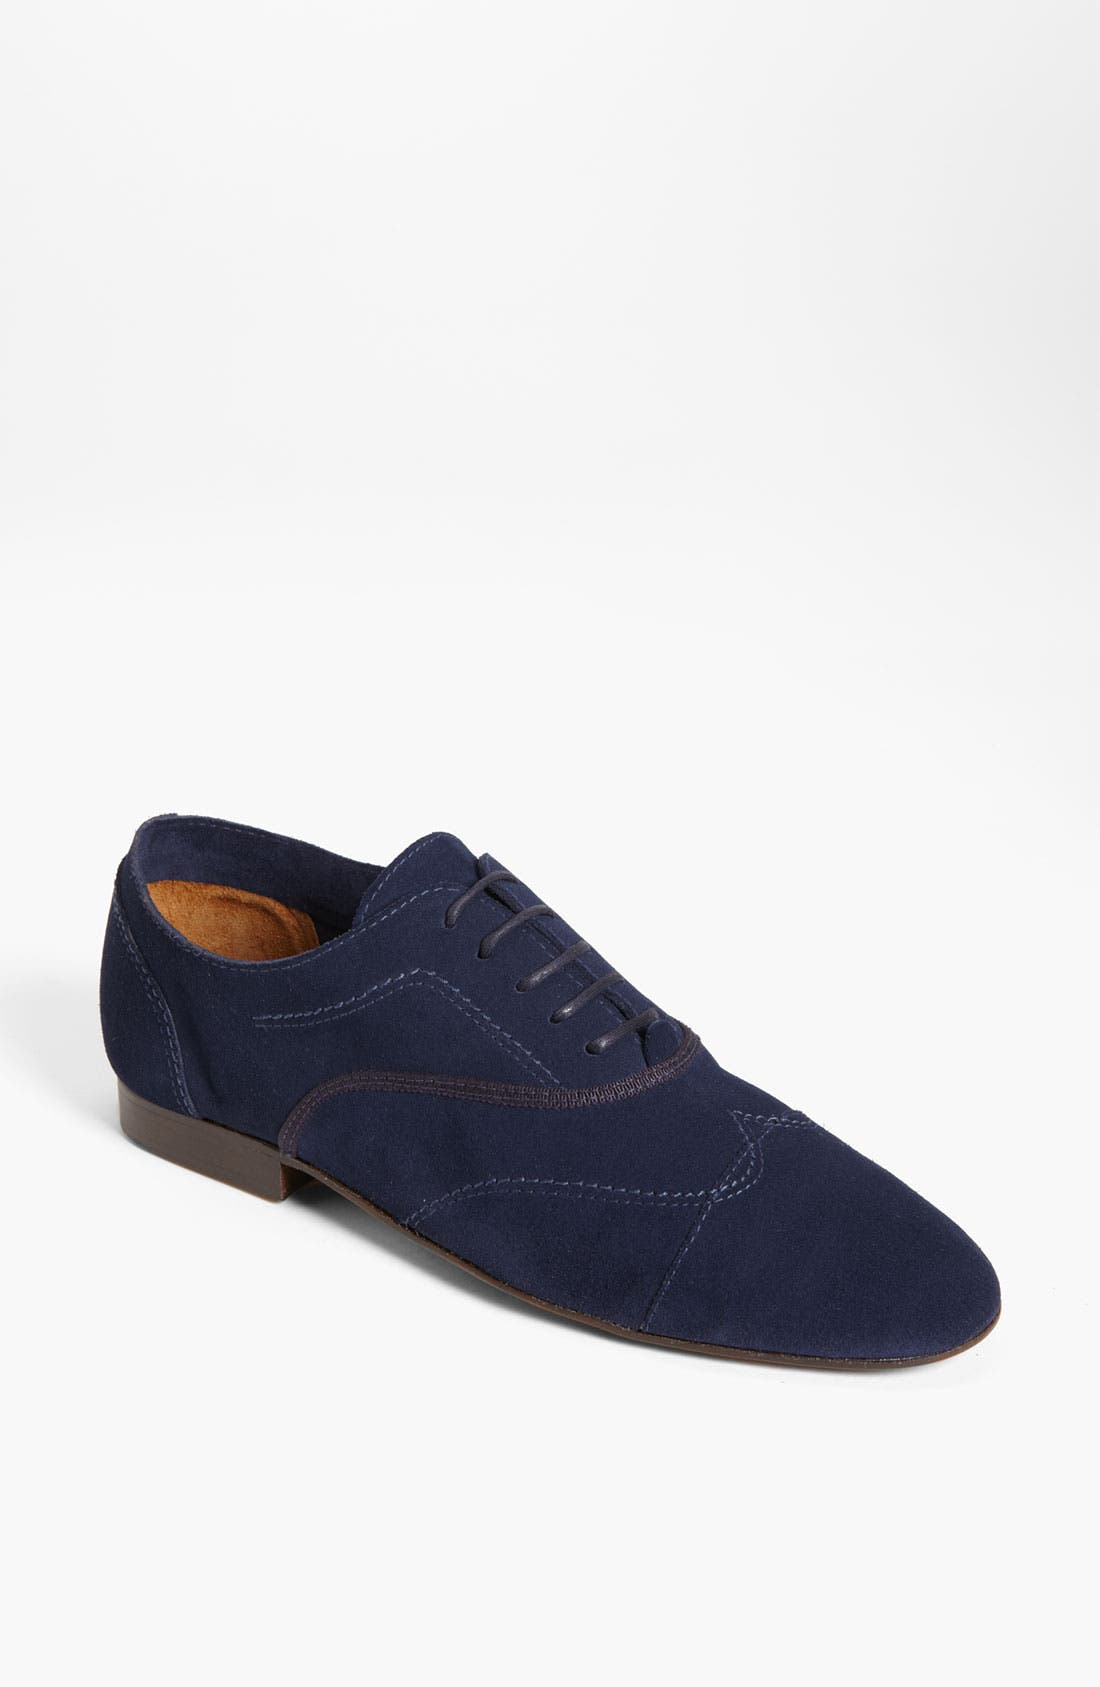 Main Image - Lanvin Oxford